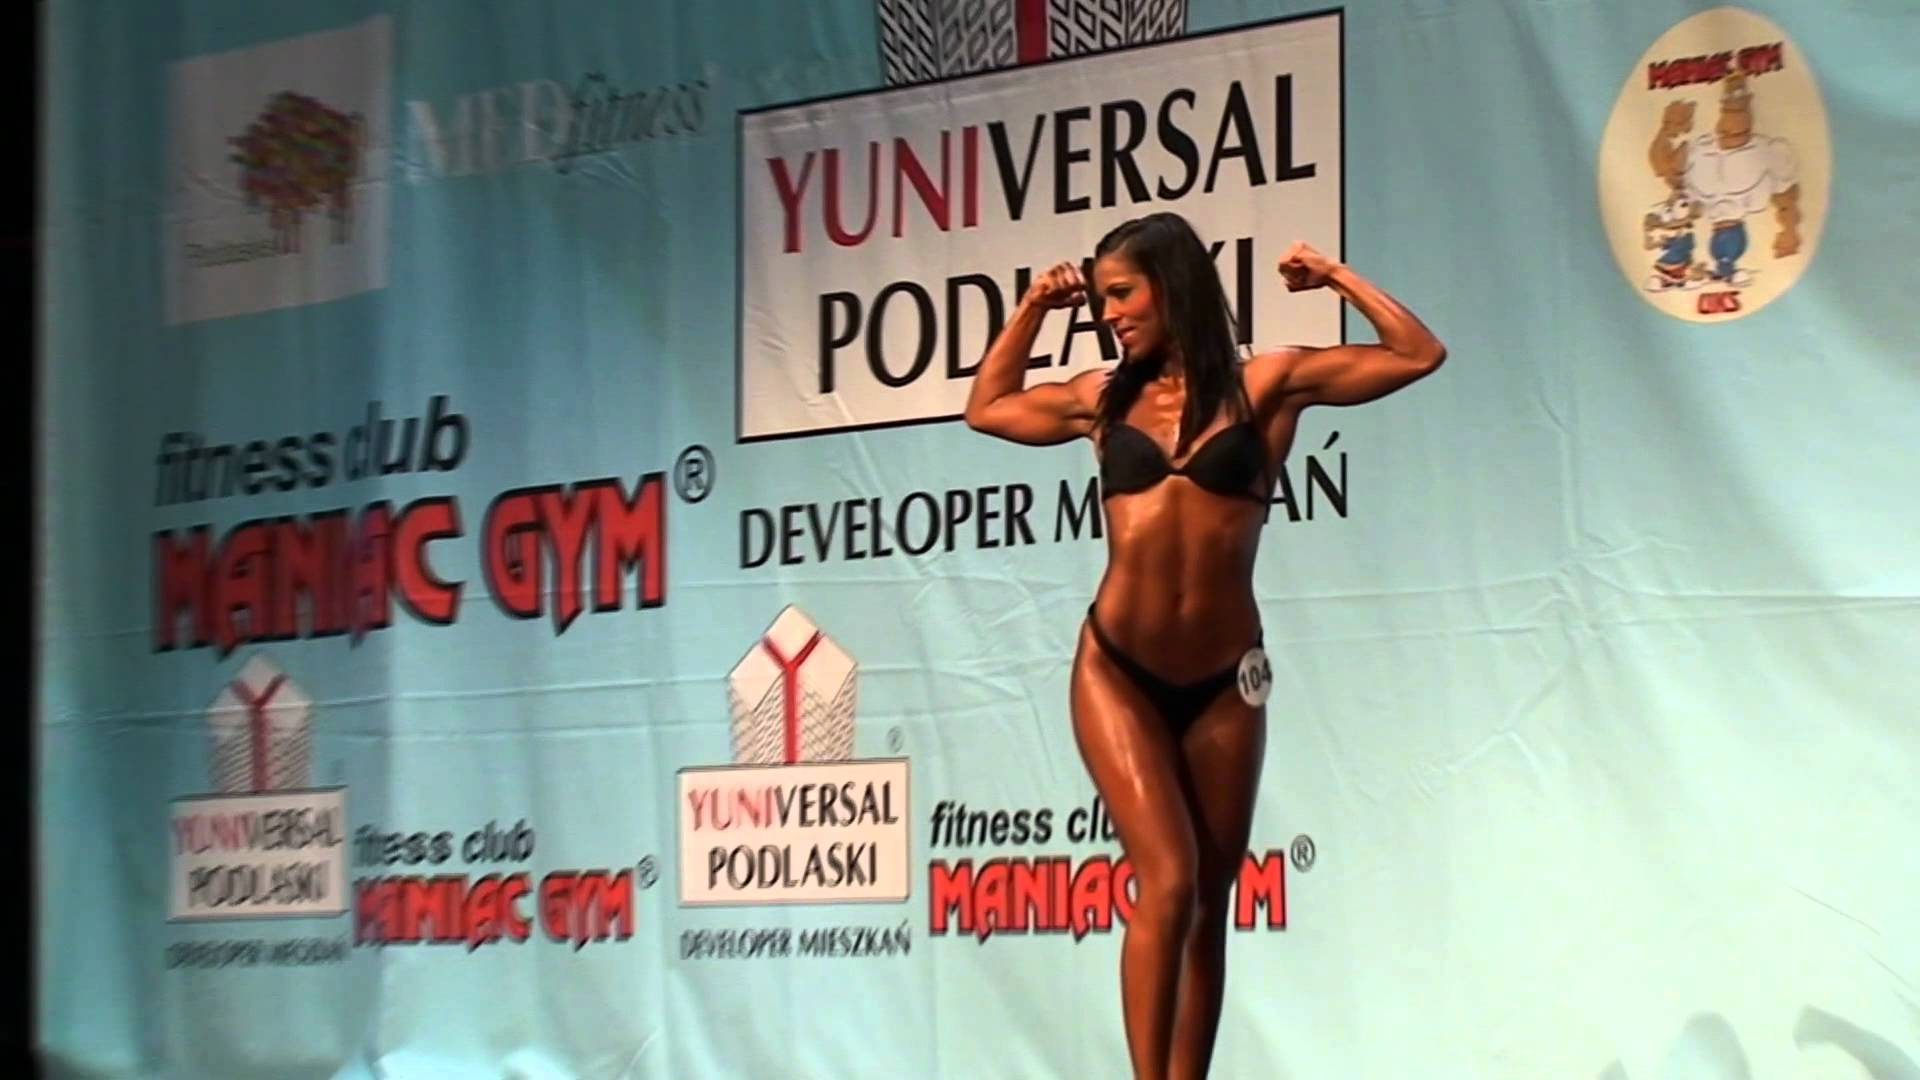 IFBB World Bodybuilding Championship 2012 Poland – To 55 kg Category